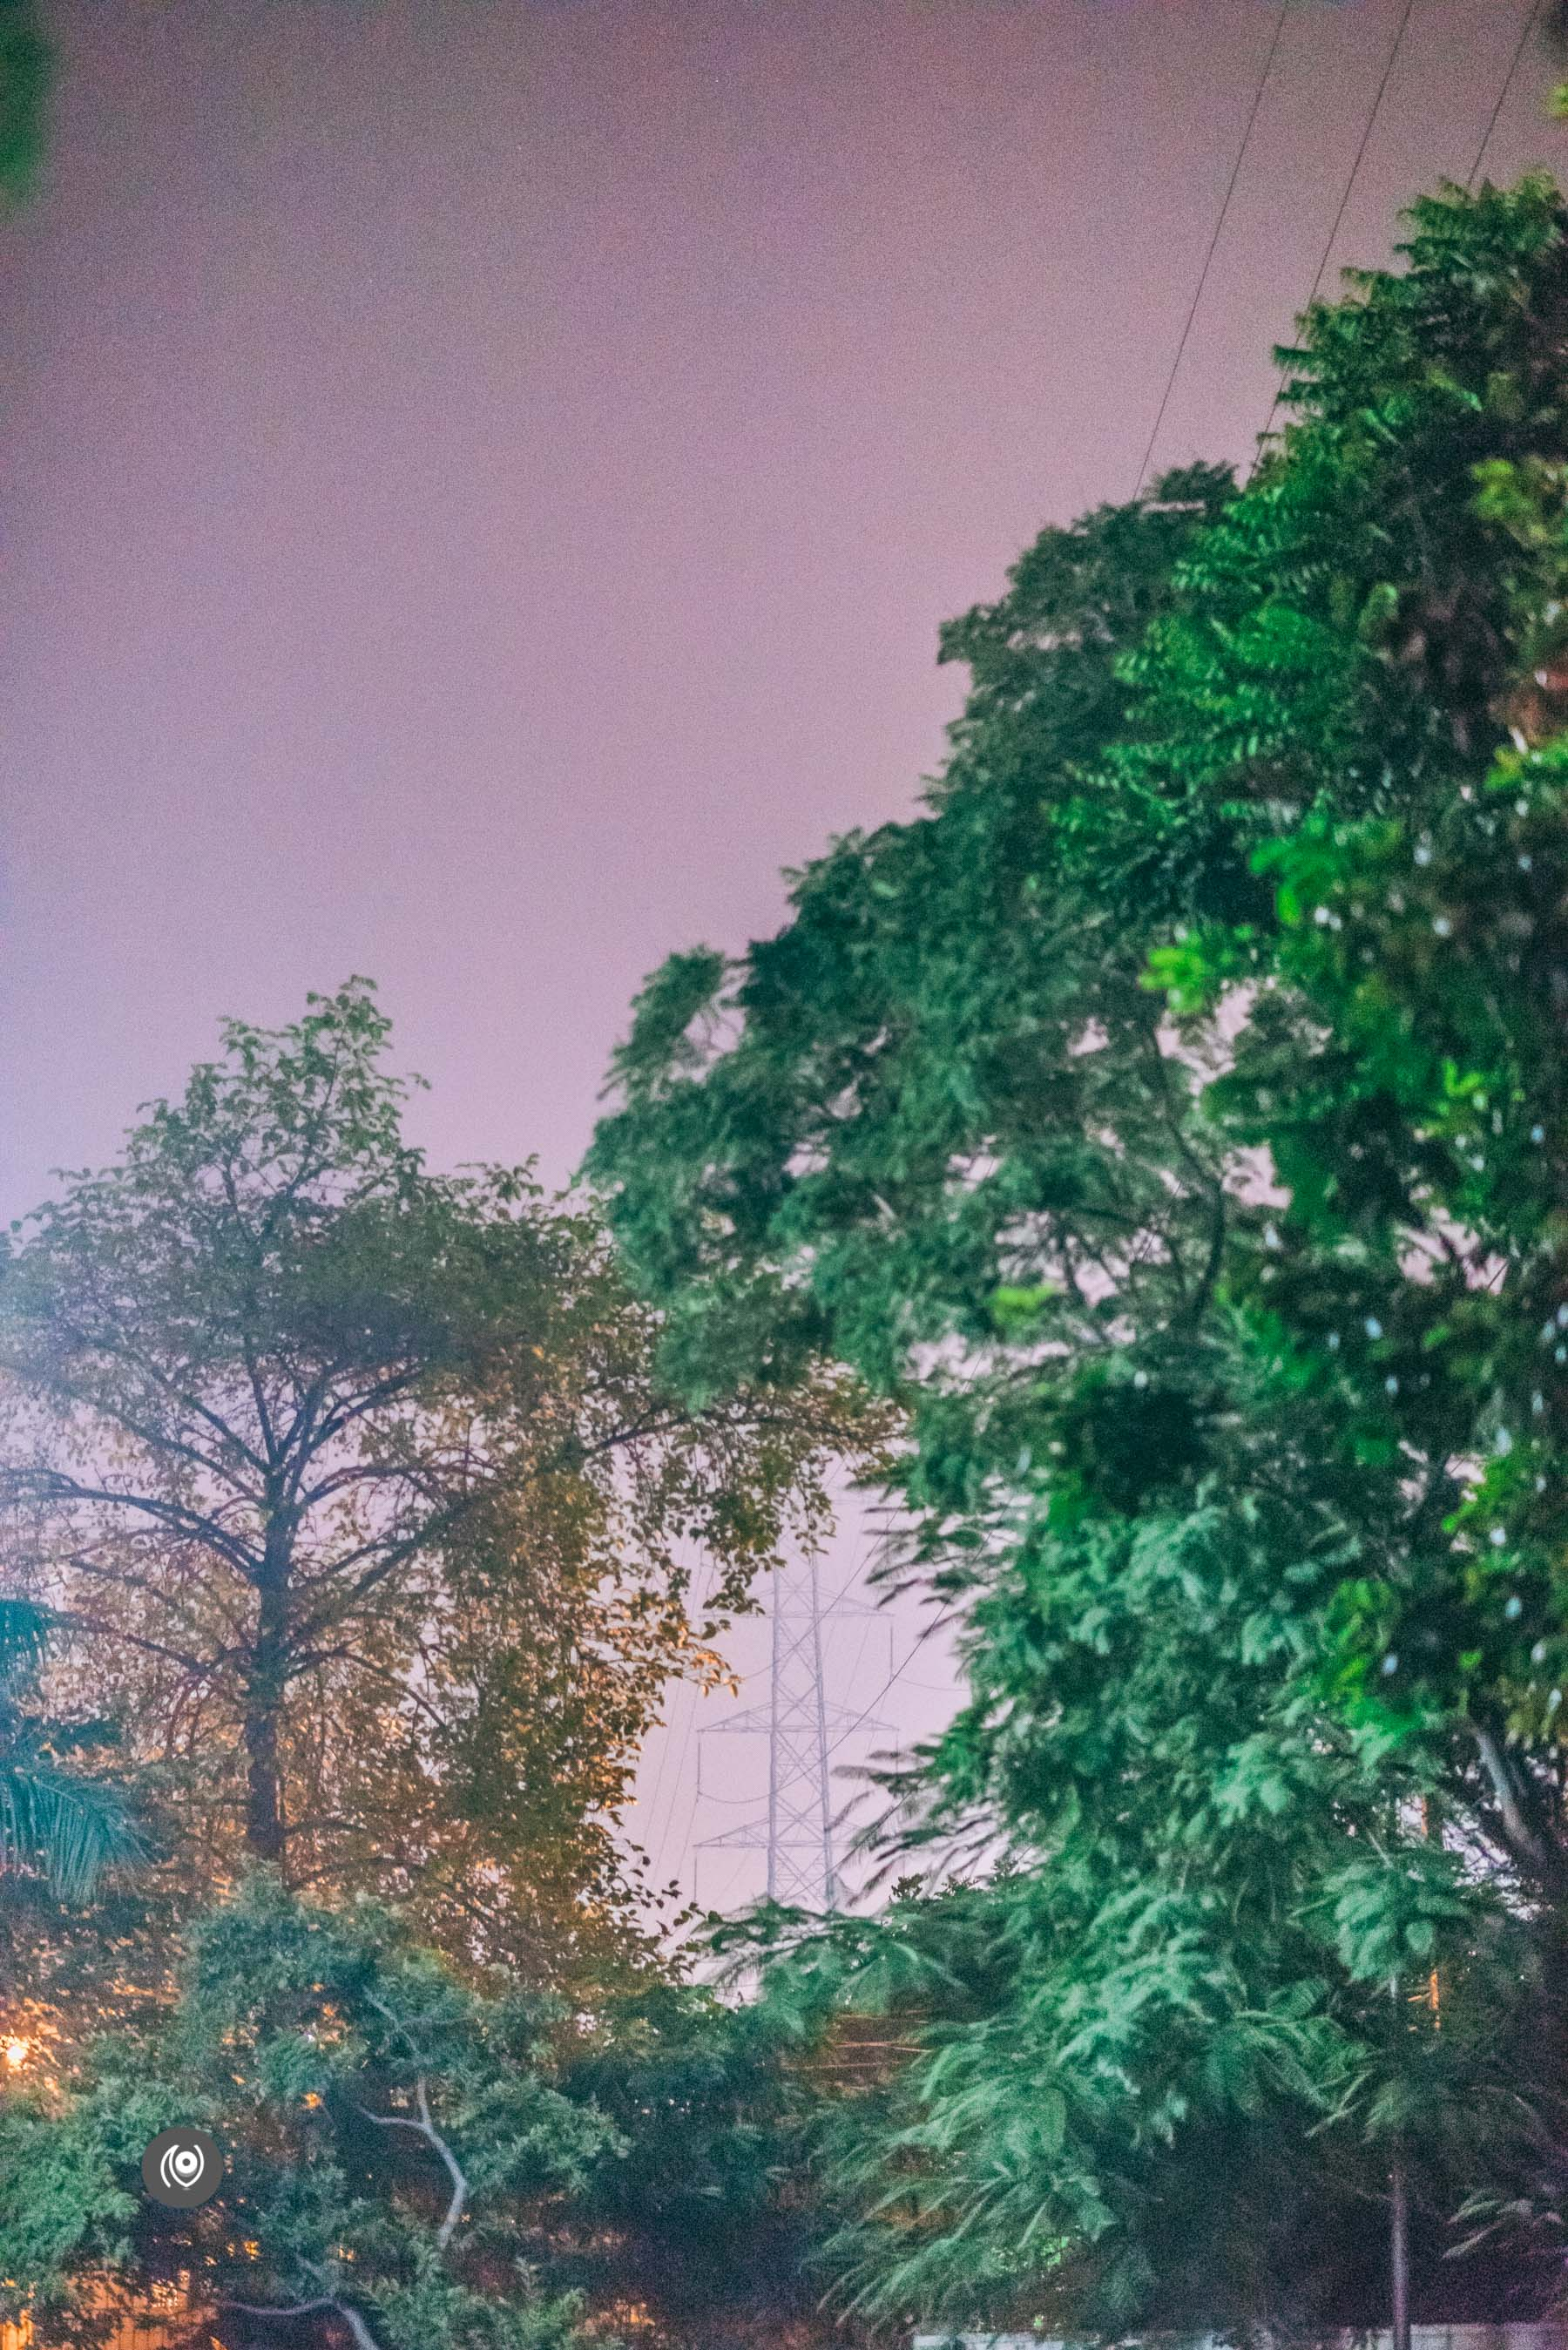 Naina.co, Naina Redhu, Luxury Blogger, Luxury Photographer, Lifestyle Photographer, Lifestyle Blogger, EyesForIndia, EyesForGurgaon, EyesForGurugram, Walking, Evening, Night, Stars, Trees, Walk at night, Night Photography, Night Photographer, Power, Electricity, Roads,